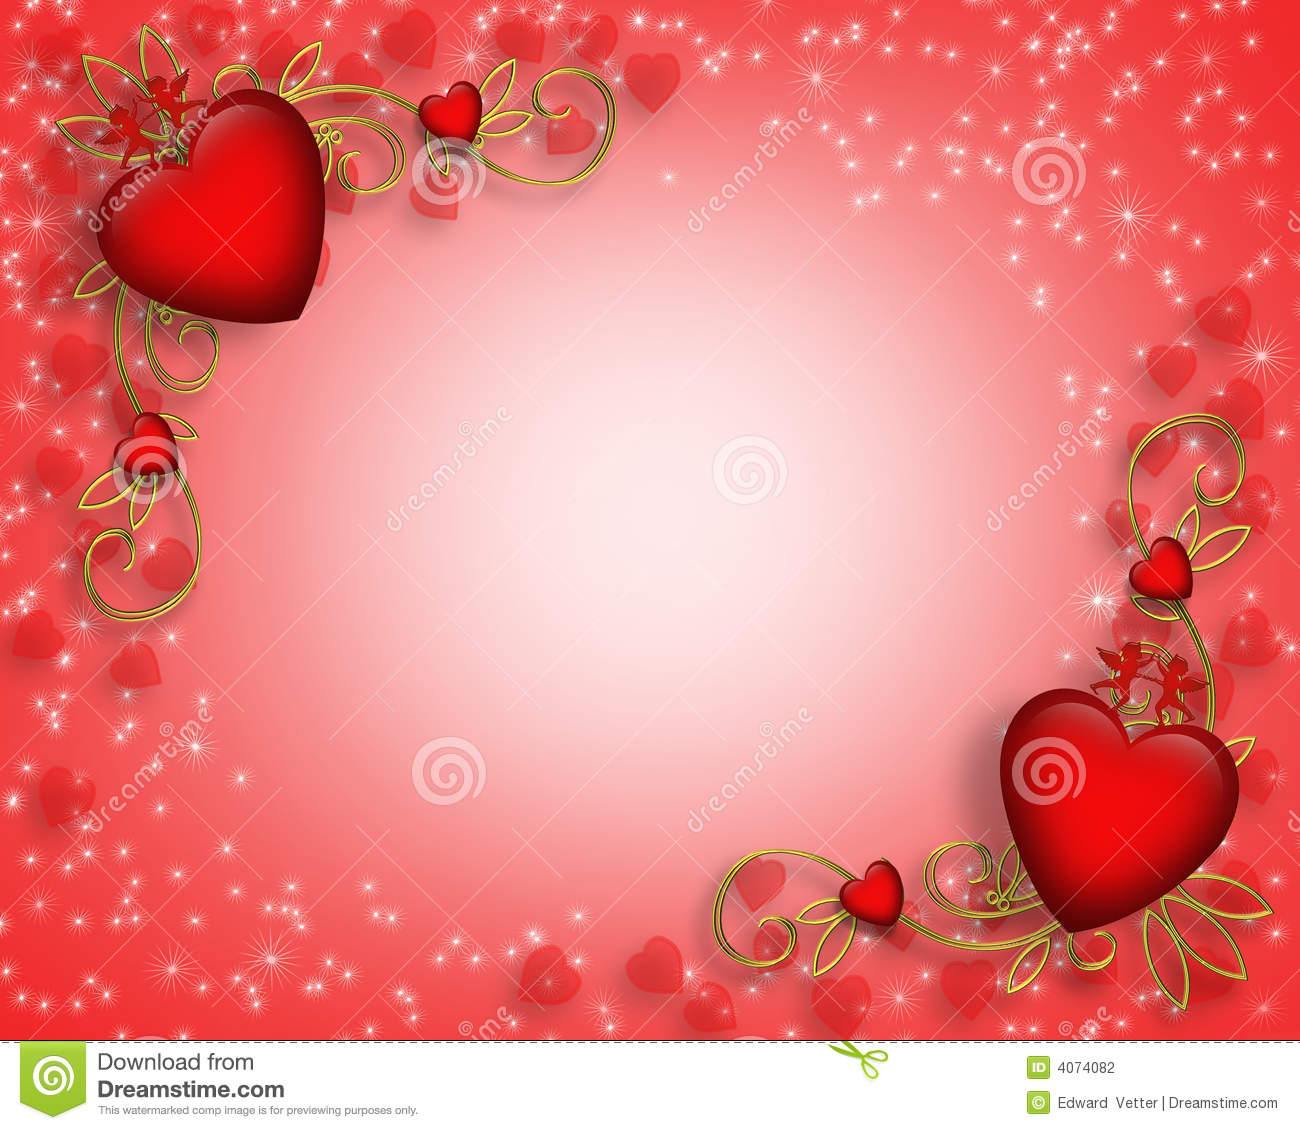 Valentines Day Card Border Or Background Photography Image – Valentines Card Pictures